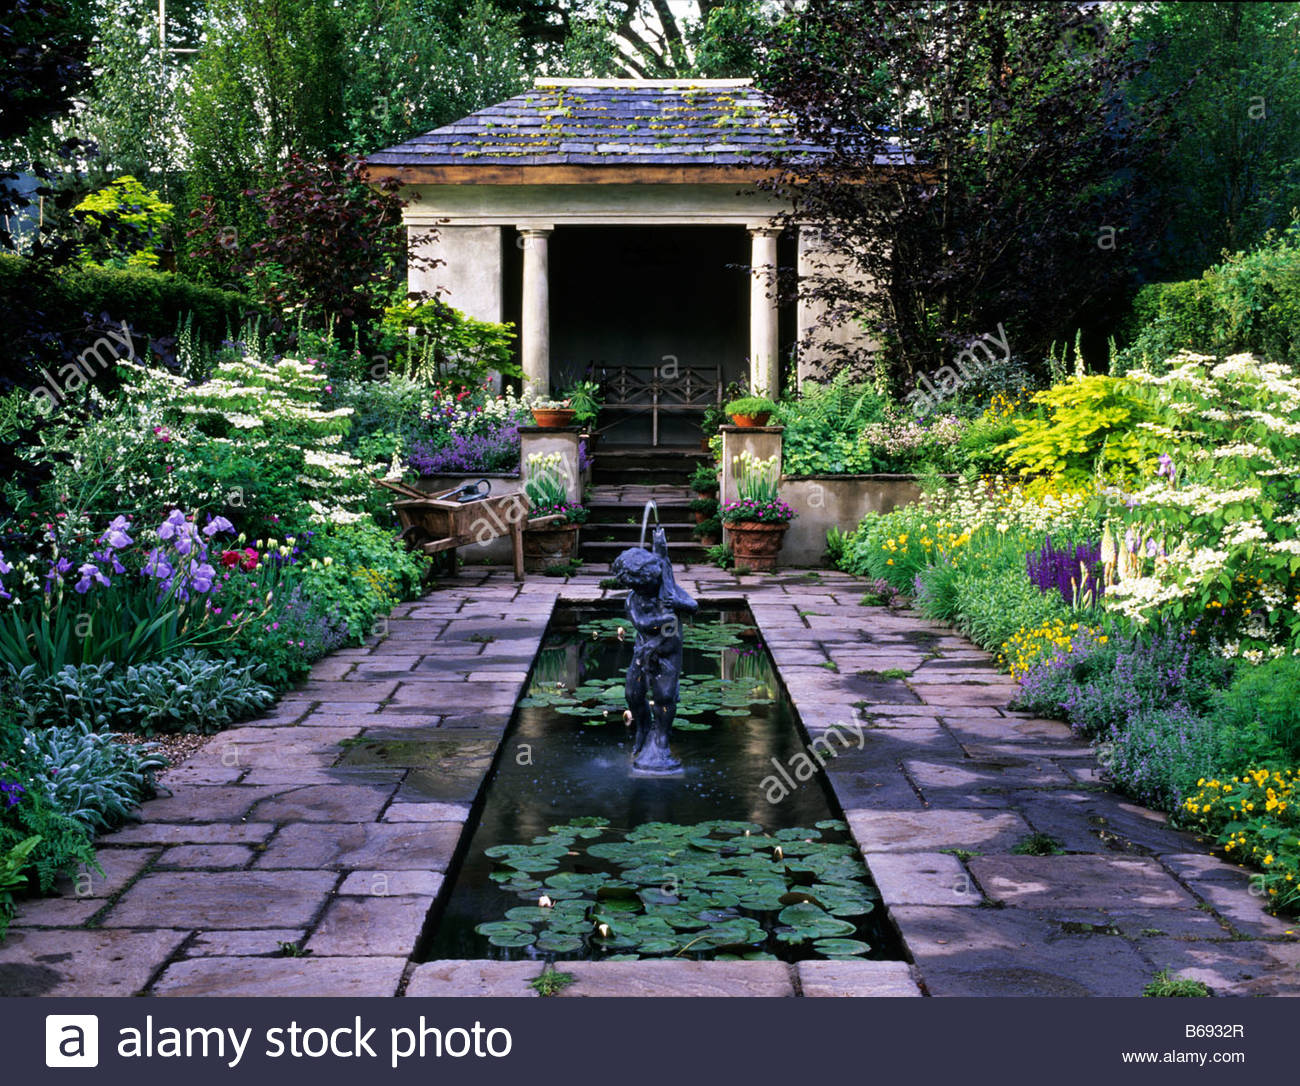 Chelsea FS 2006 Design Chris Bradshaw Formal pond in